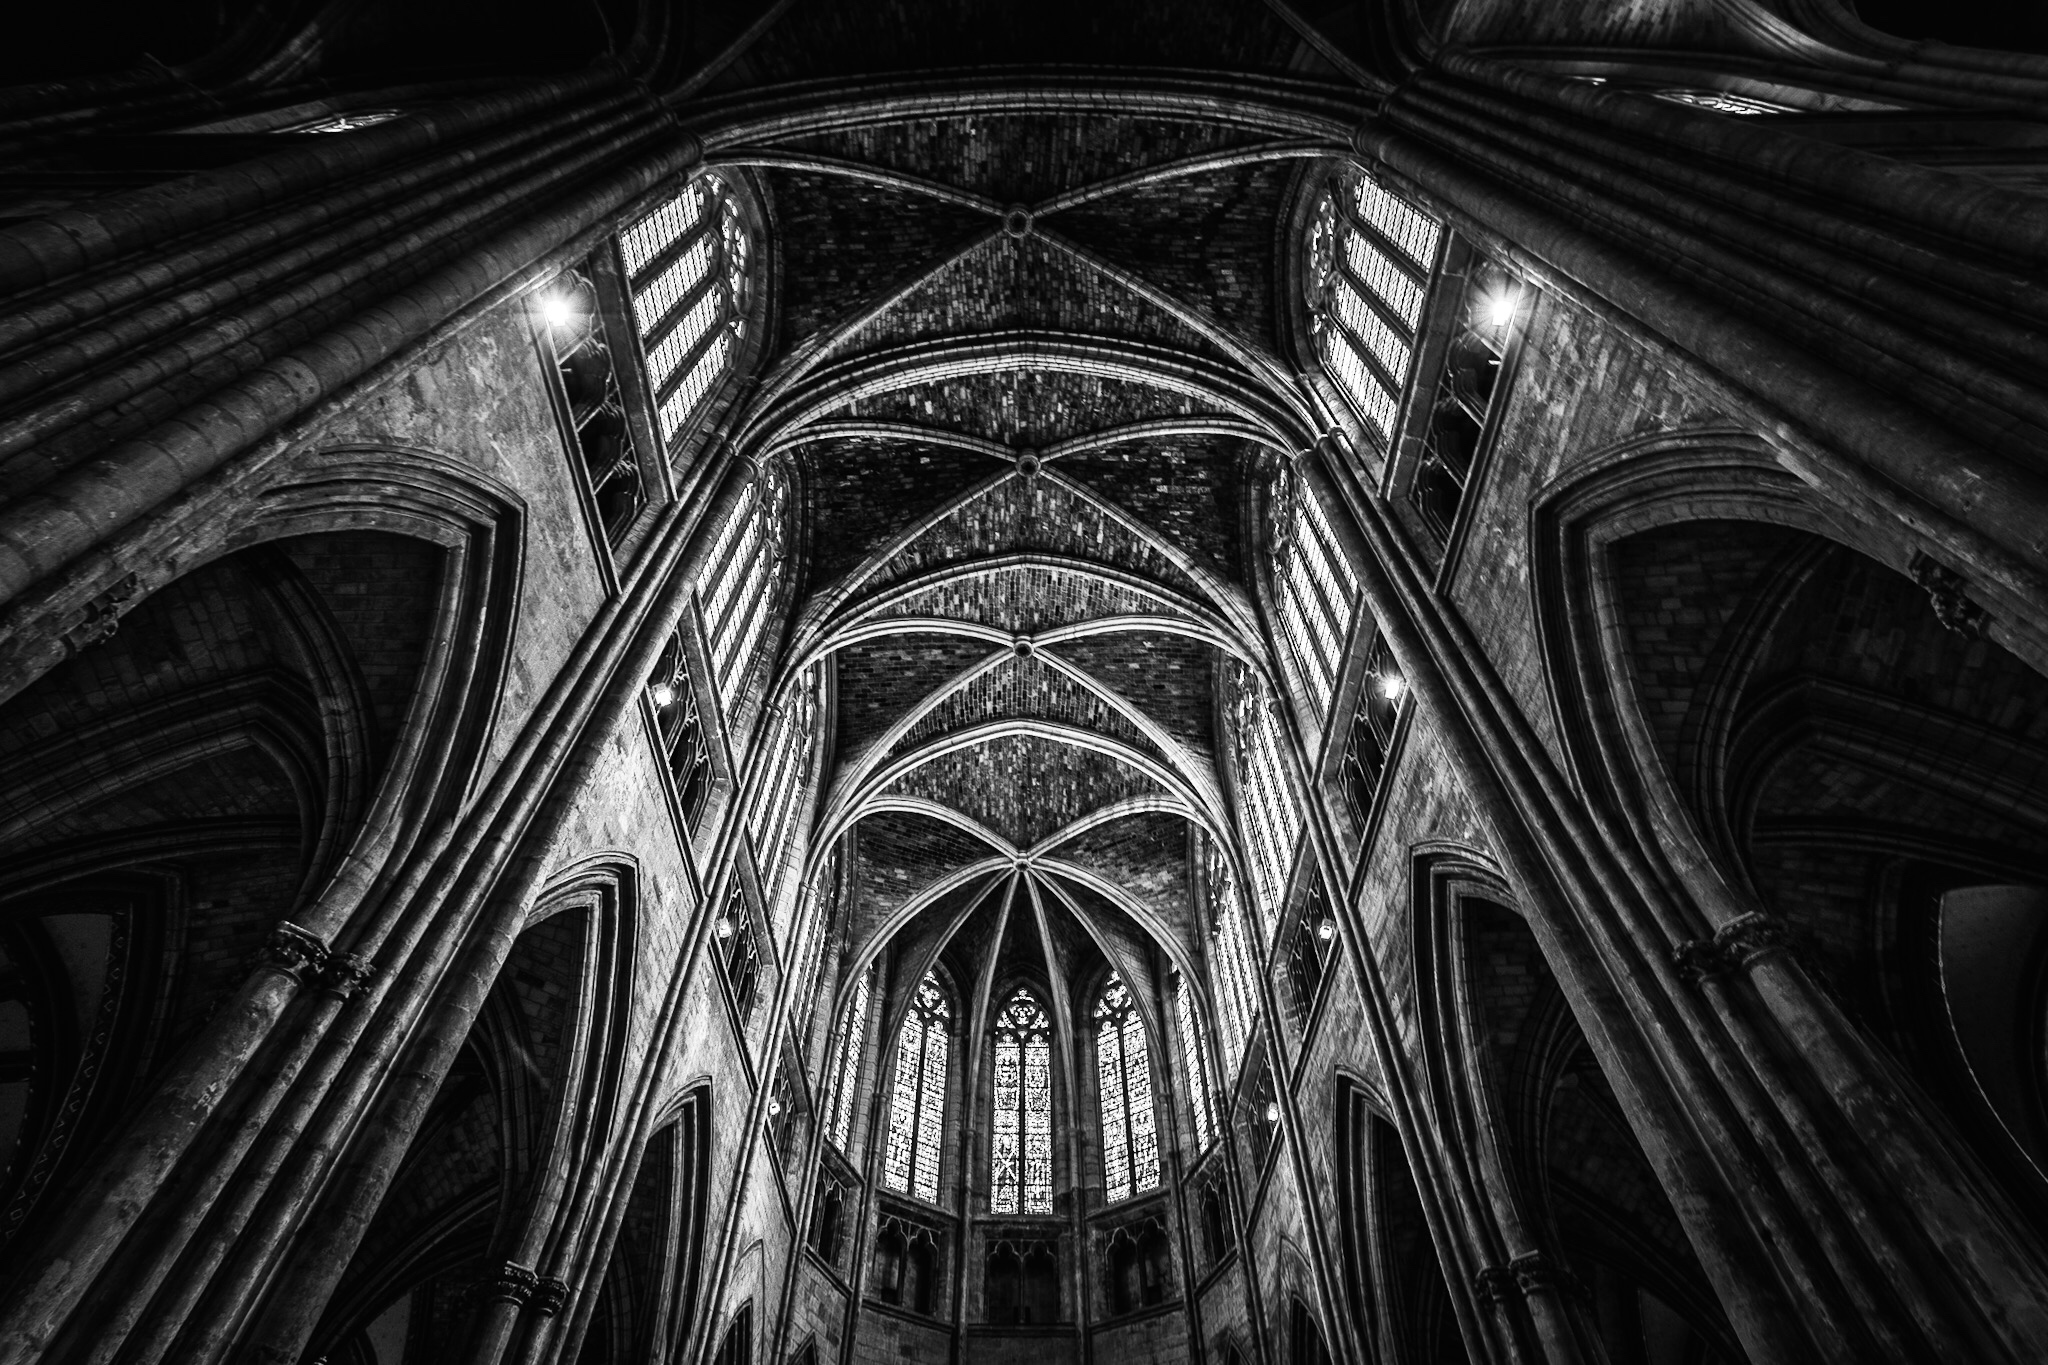 Black and white architectural photography by Rick McEvoy